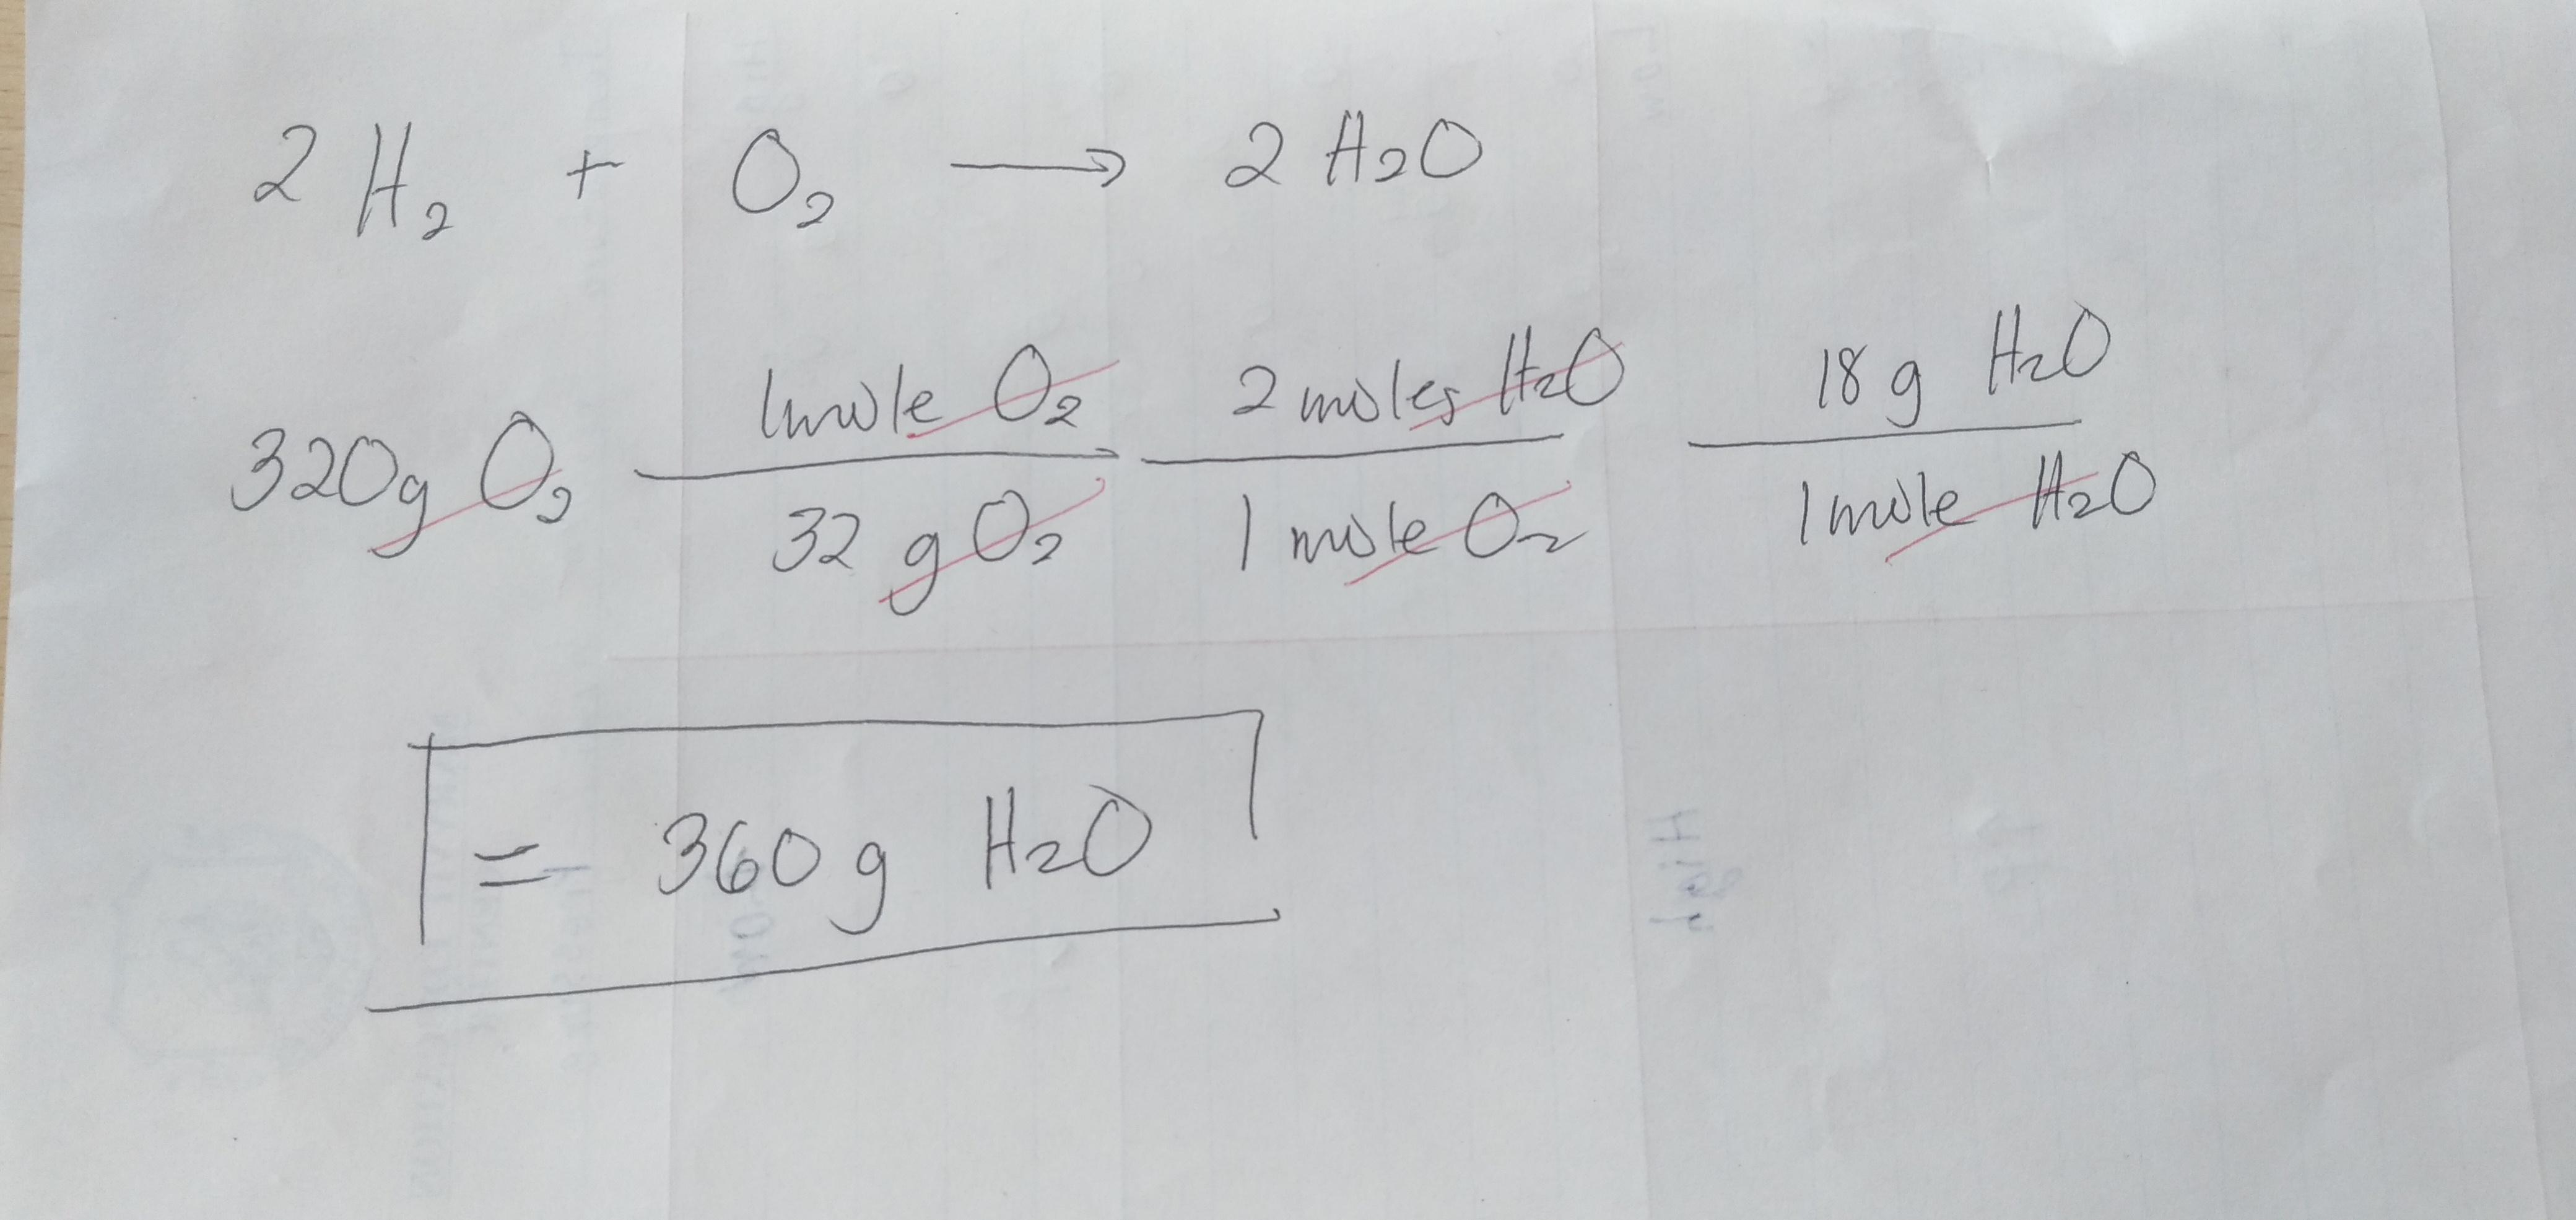 The Equation For The Formation Of Water From Hydrogen Gas